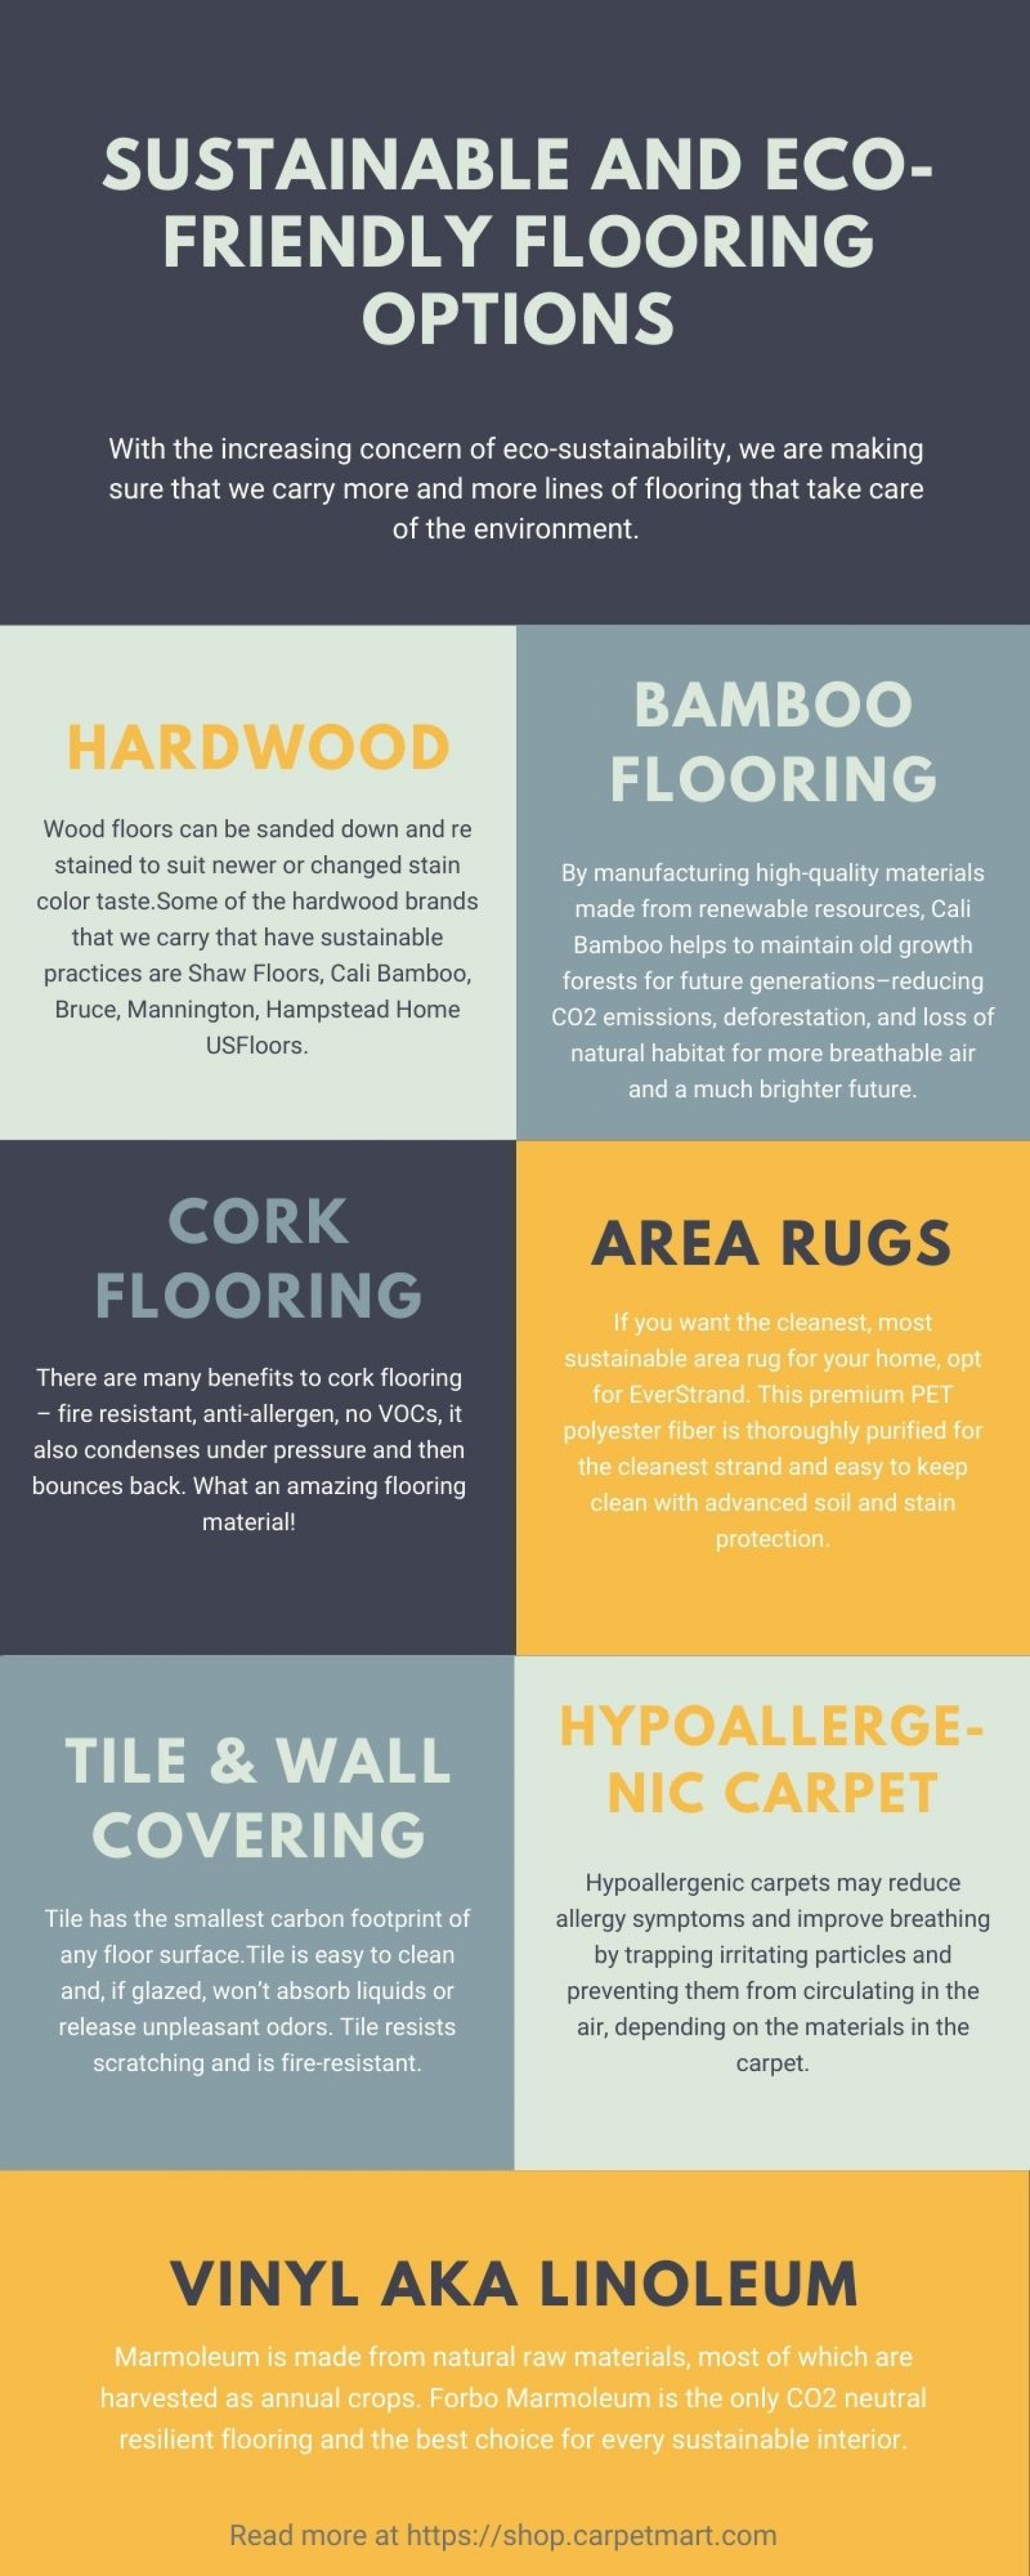 Sustainable and Eco-Friendly Flooring Options Infographic